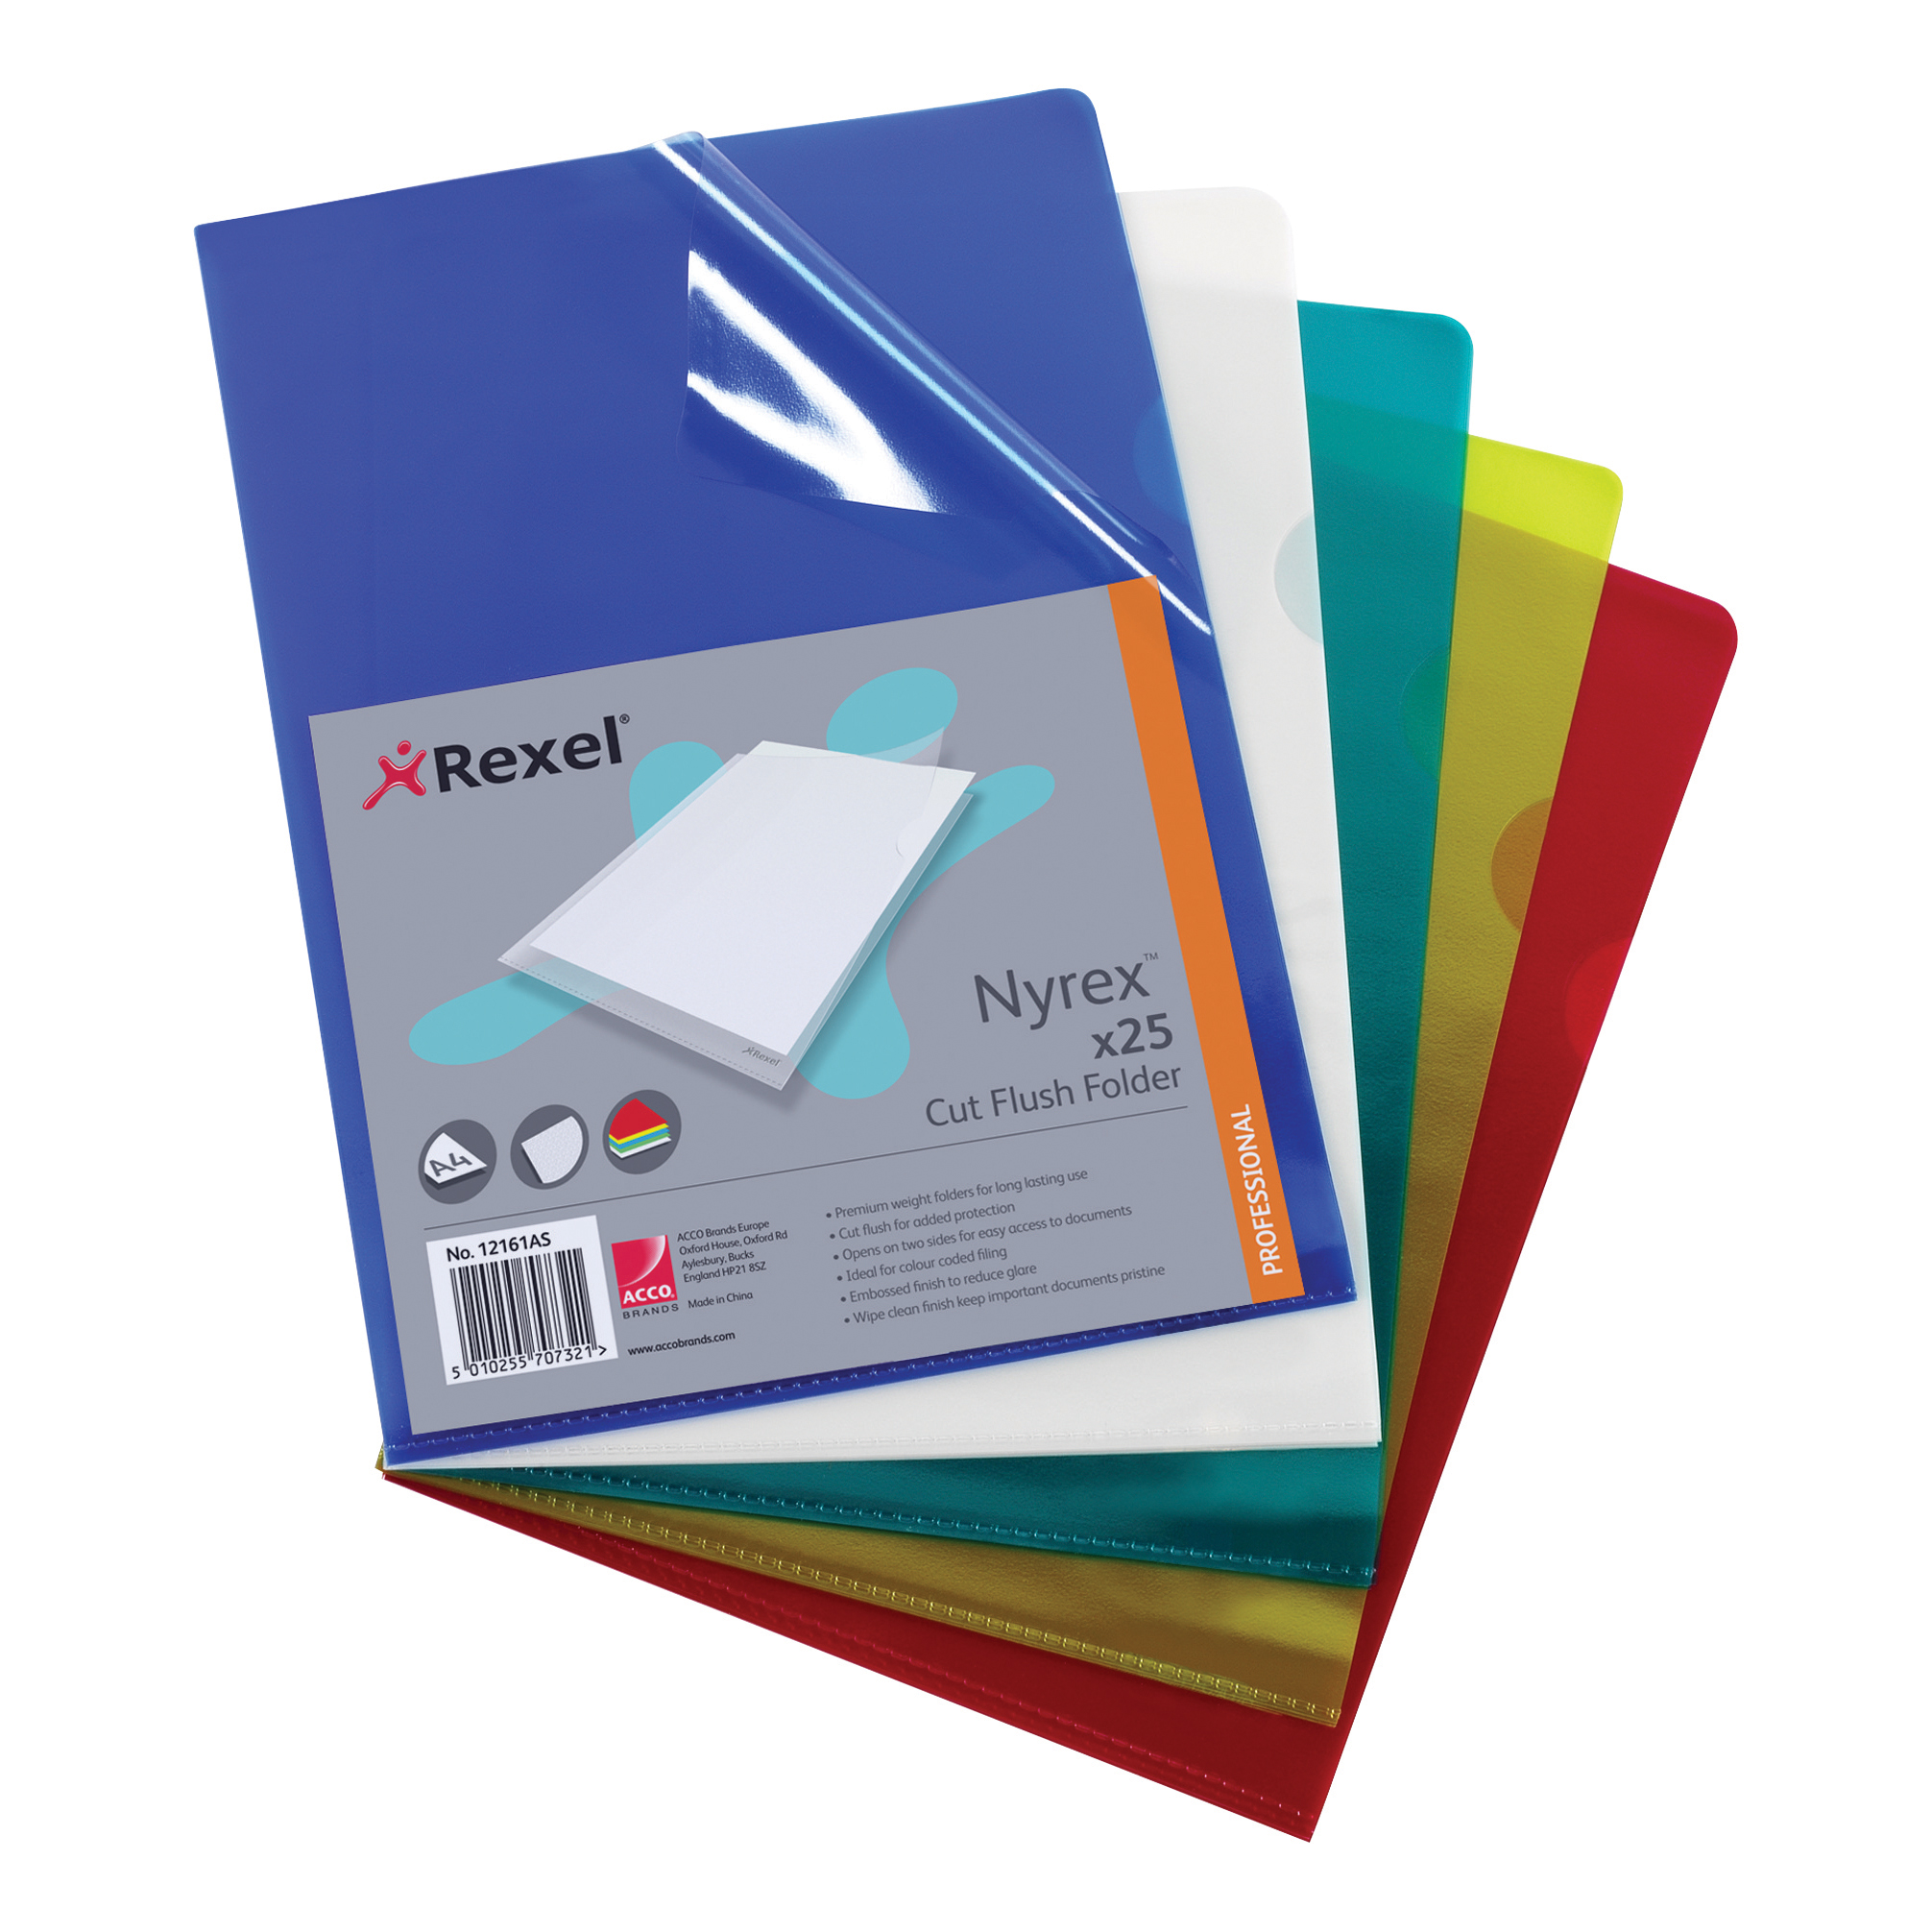 Rexel Nyrex Folder Cut Flush A4 Assorted Ref 12161AS Pack 25